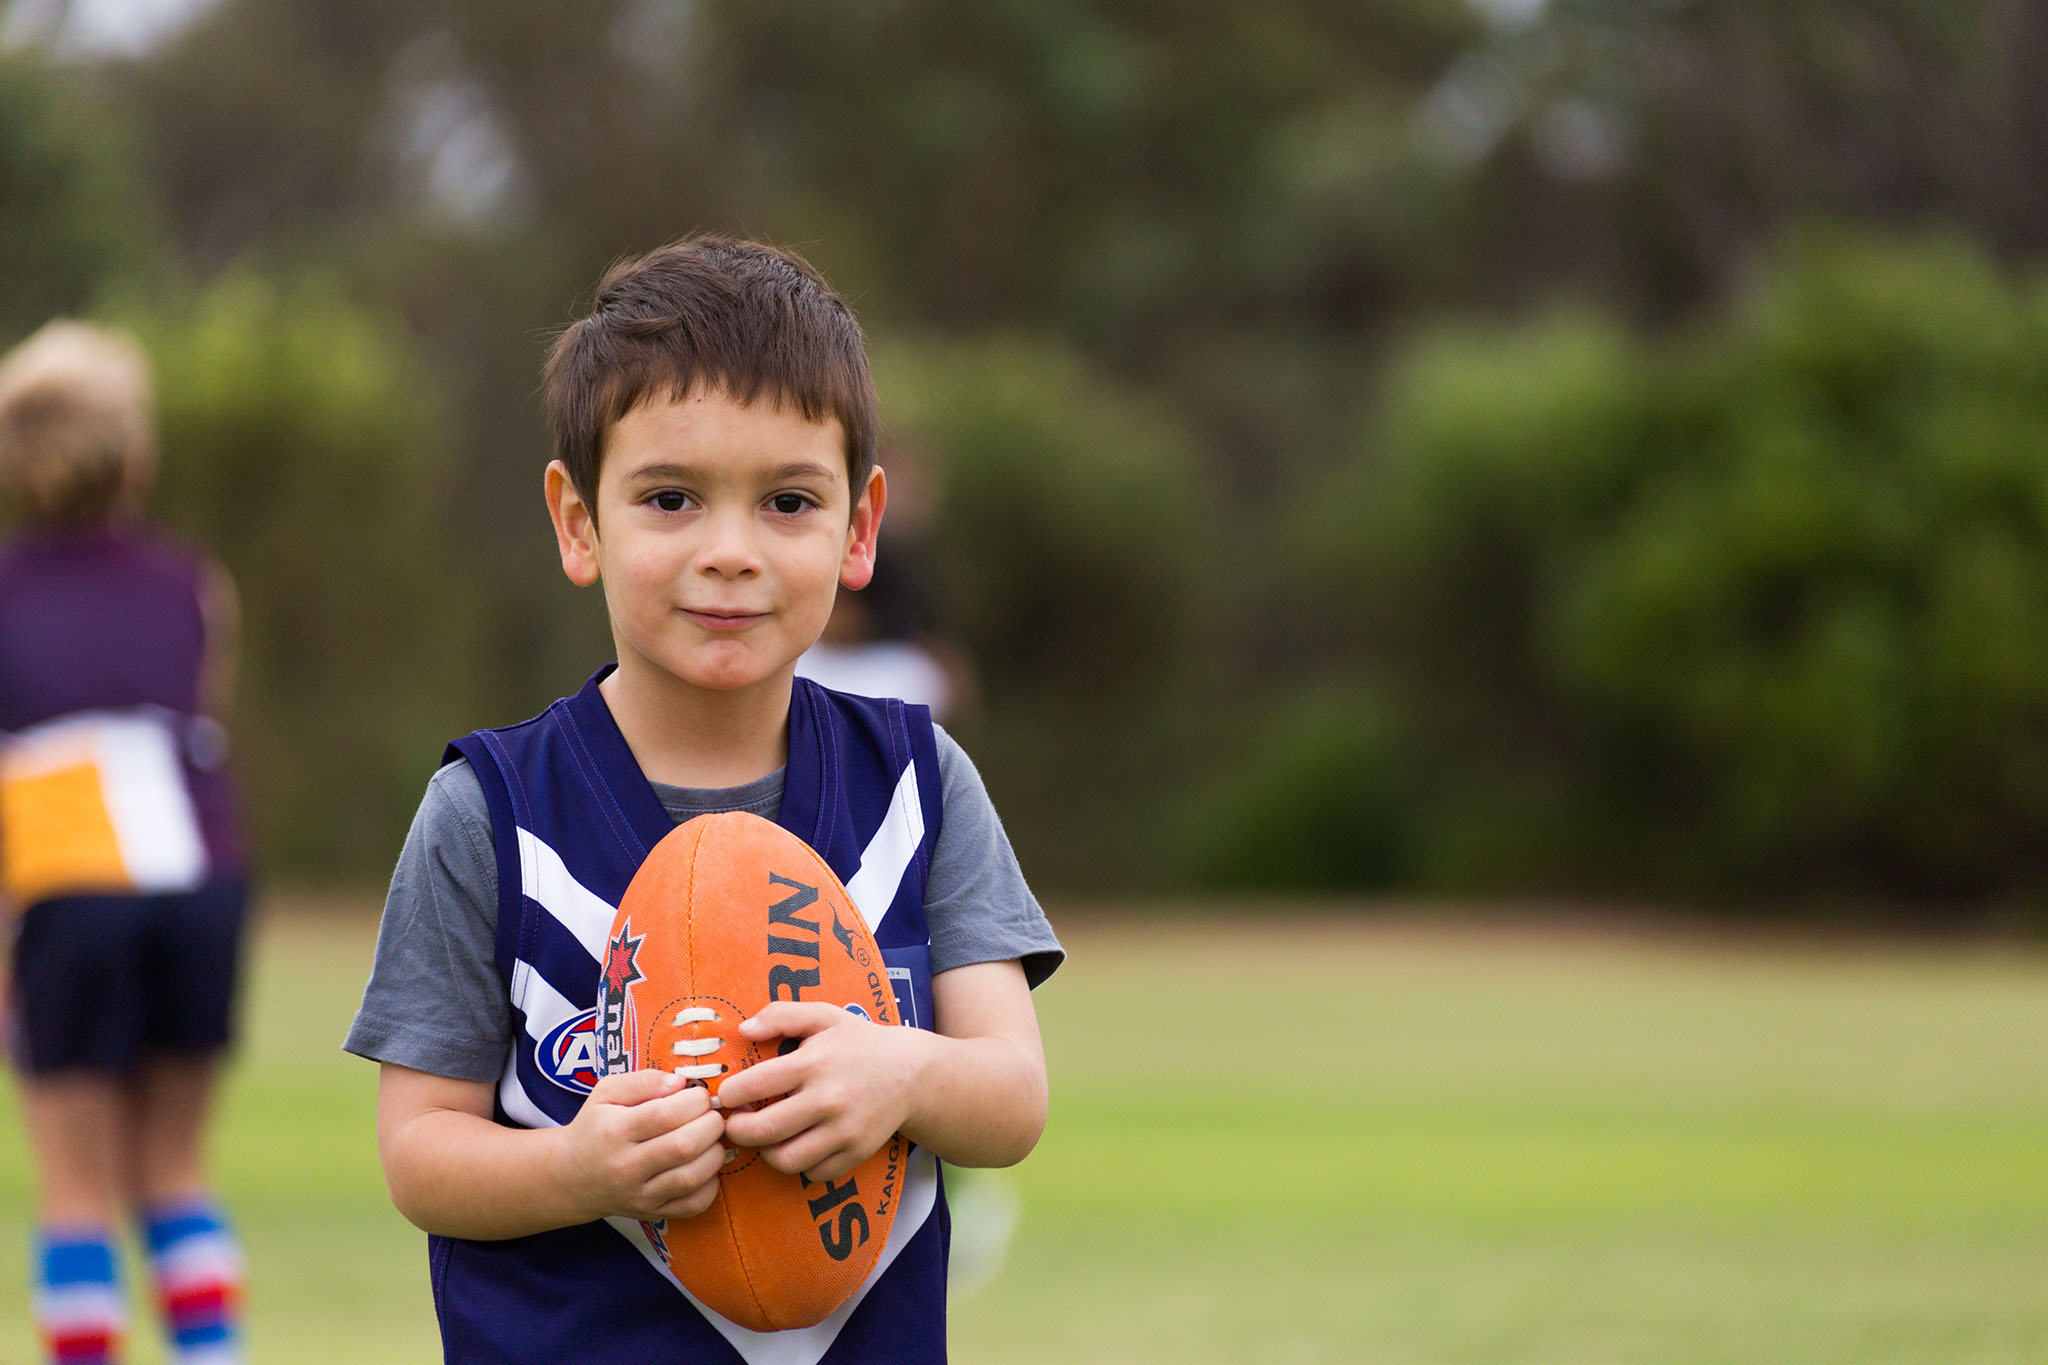 Photo of a young boy holding his football